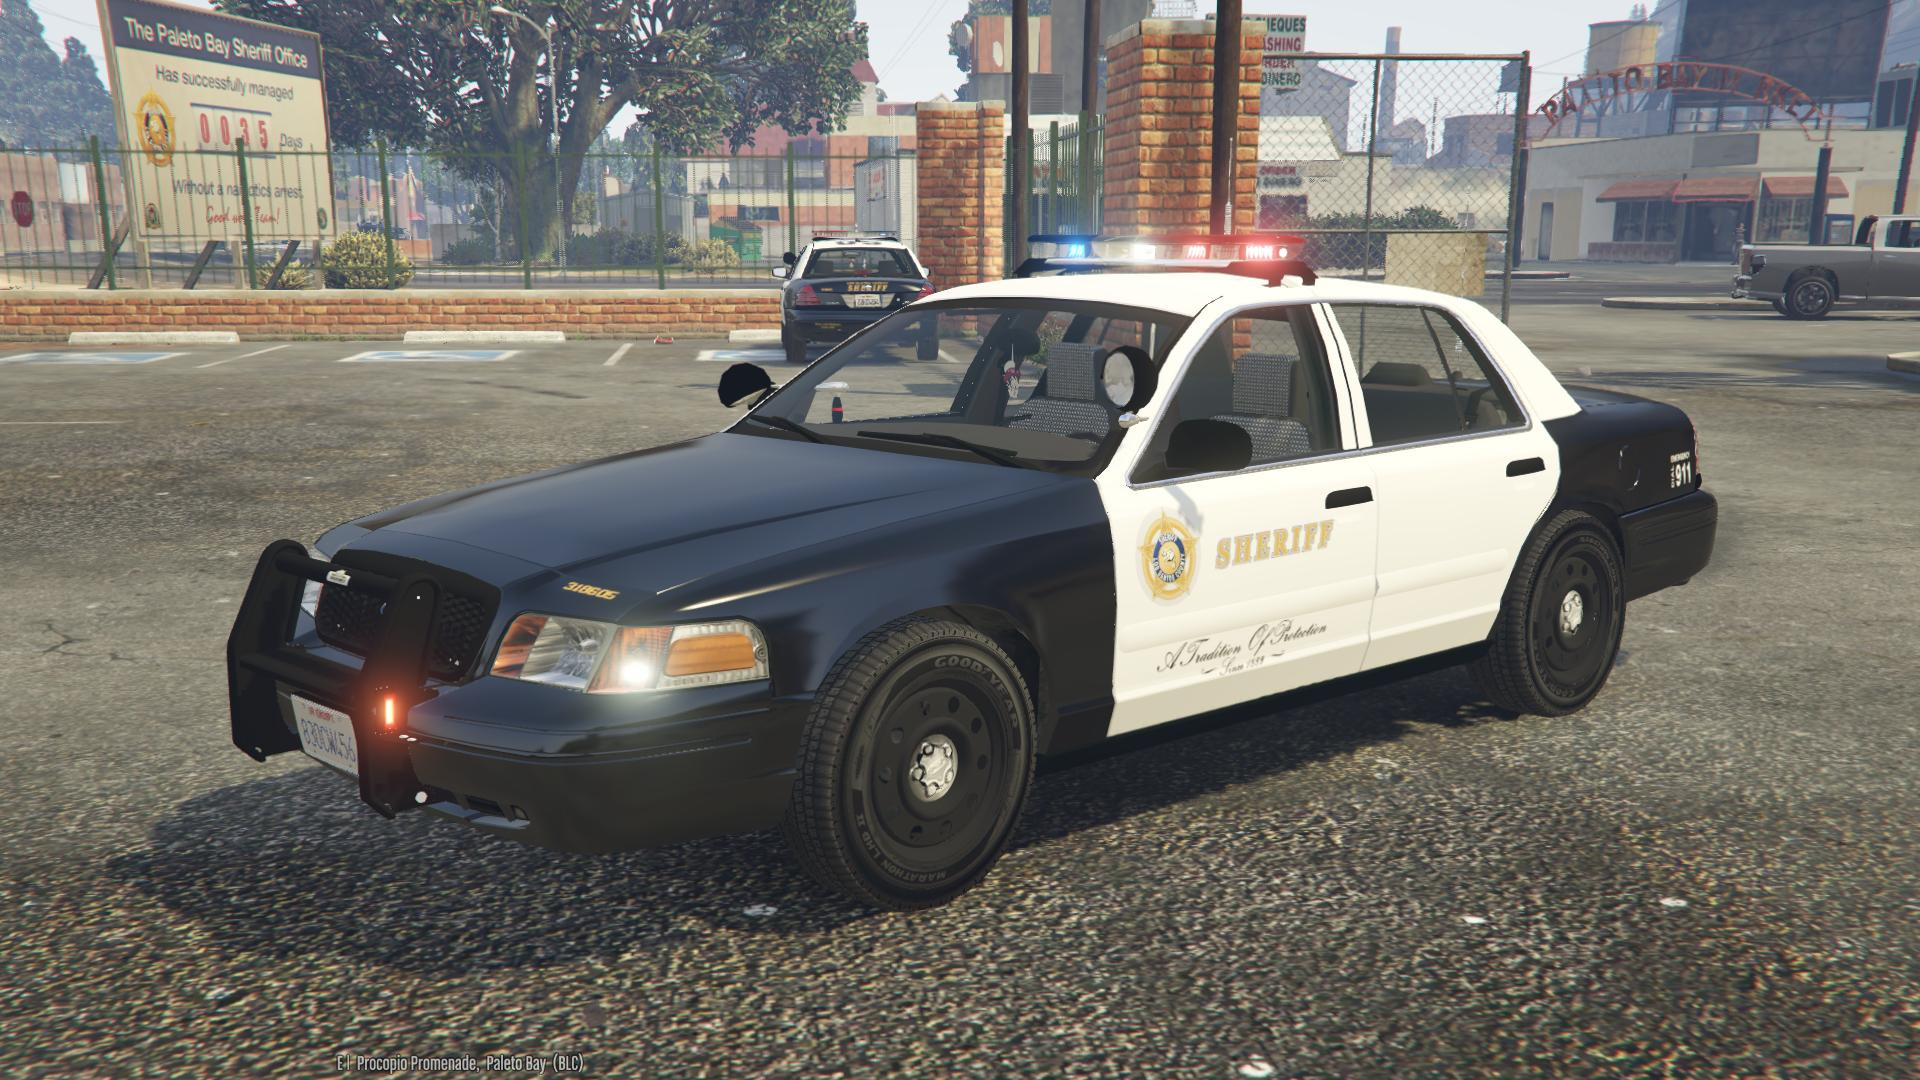 Crown Vic Police Car Wallpaper Evl 2011 Ford Crown Victoria Police Interceptor Los